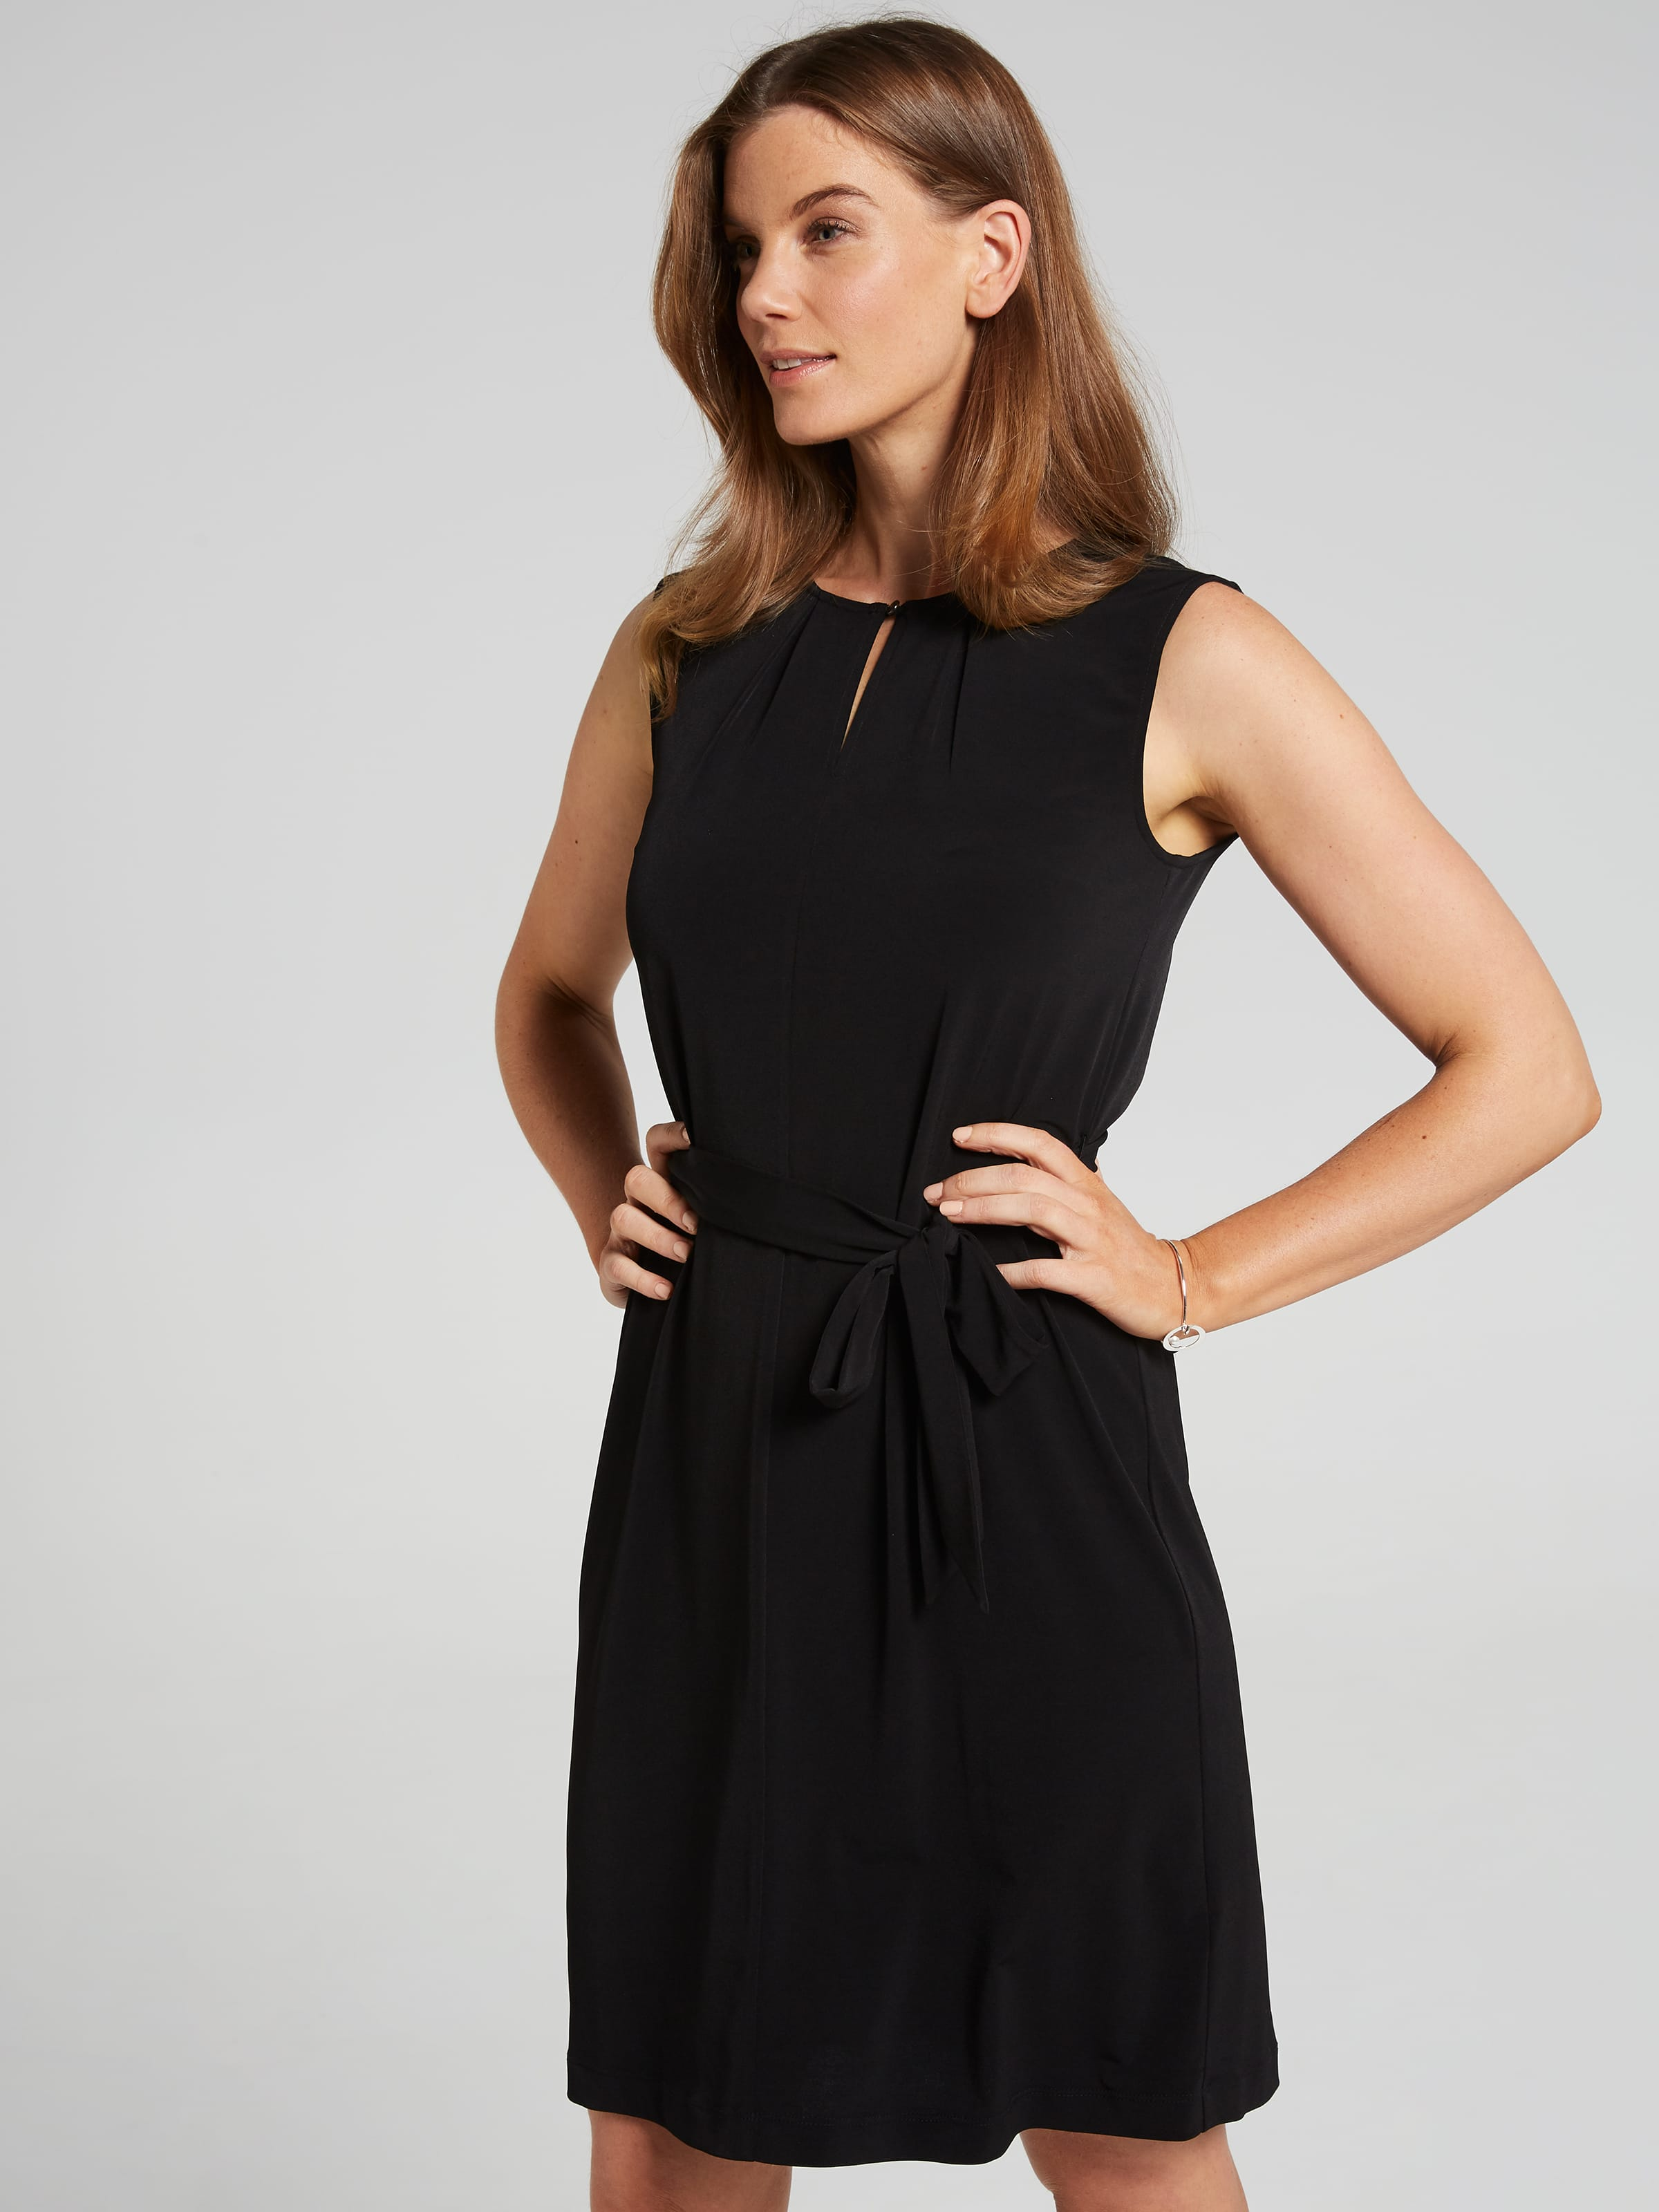 Image of Jacqui E Australia Jacqui E Sleeveless Lorie Notch Neck Tunic